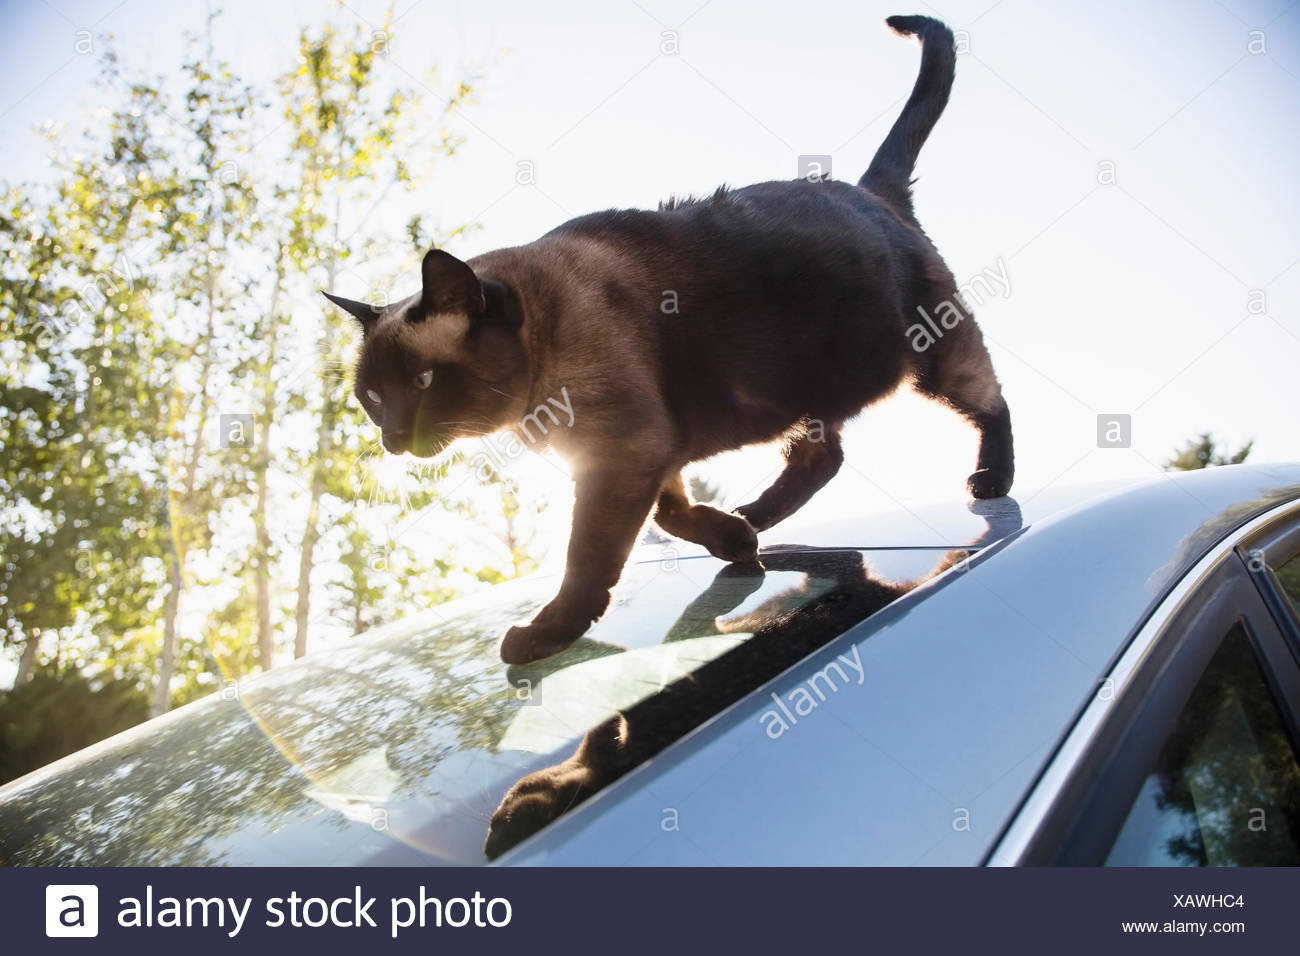 Cat on car roof - Stock Image